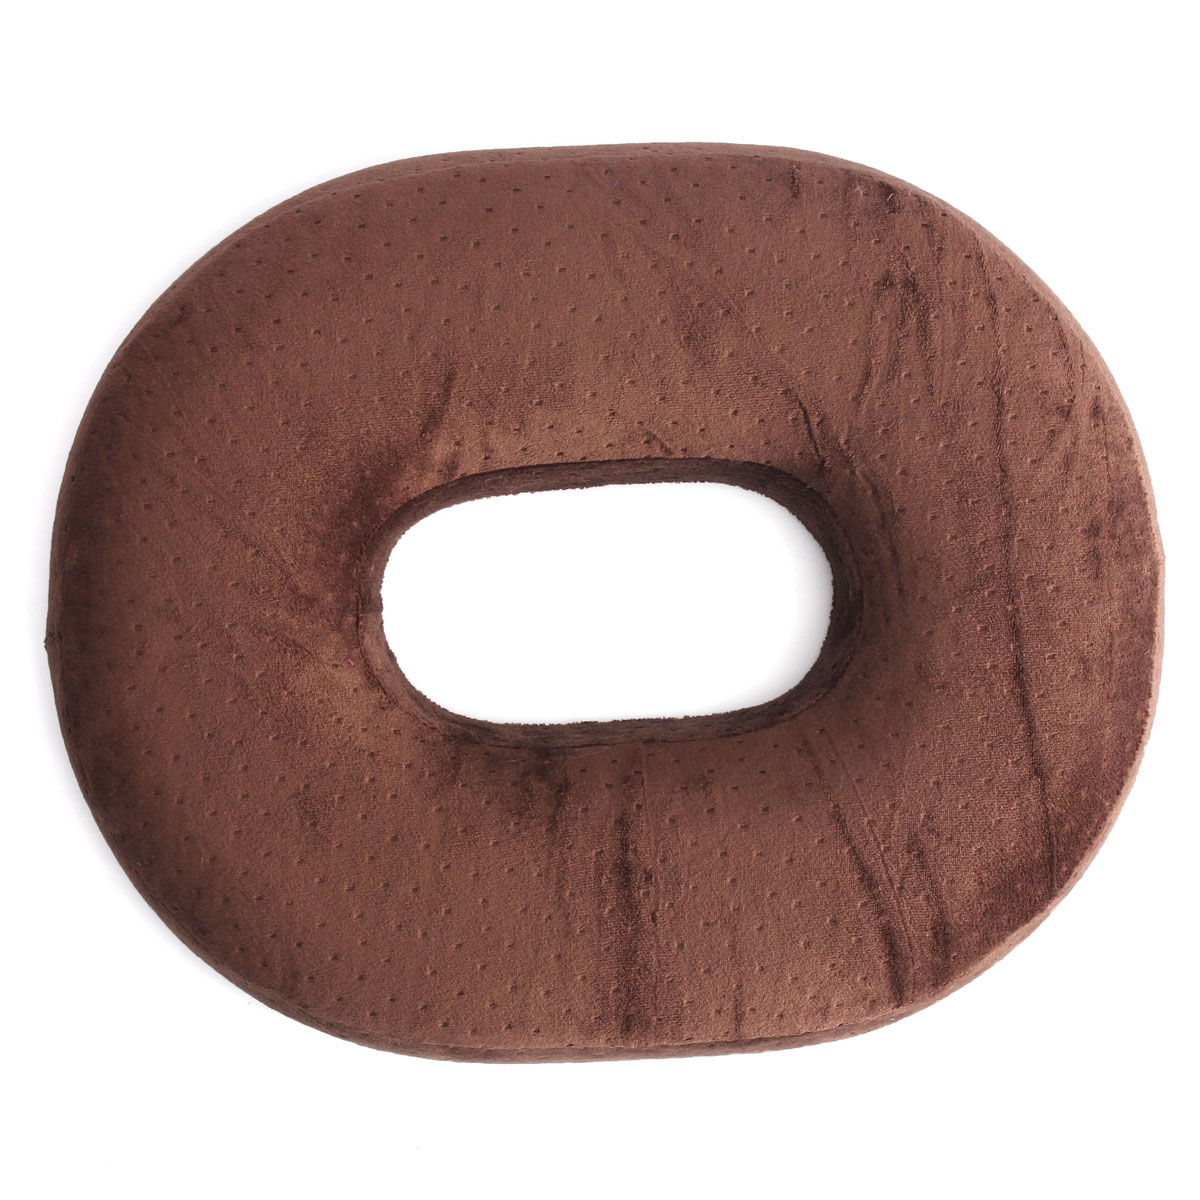 1 Pc Pain Relief Ring Home Pregnancy Pressure Cushion Office Car Chair Seat Cushion Memory Sponge Foam Comfort Donut Pillow Back Support